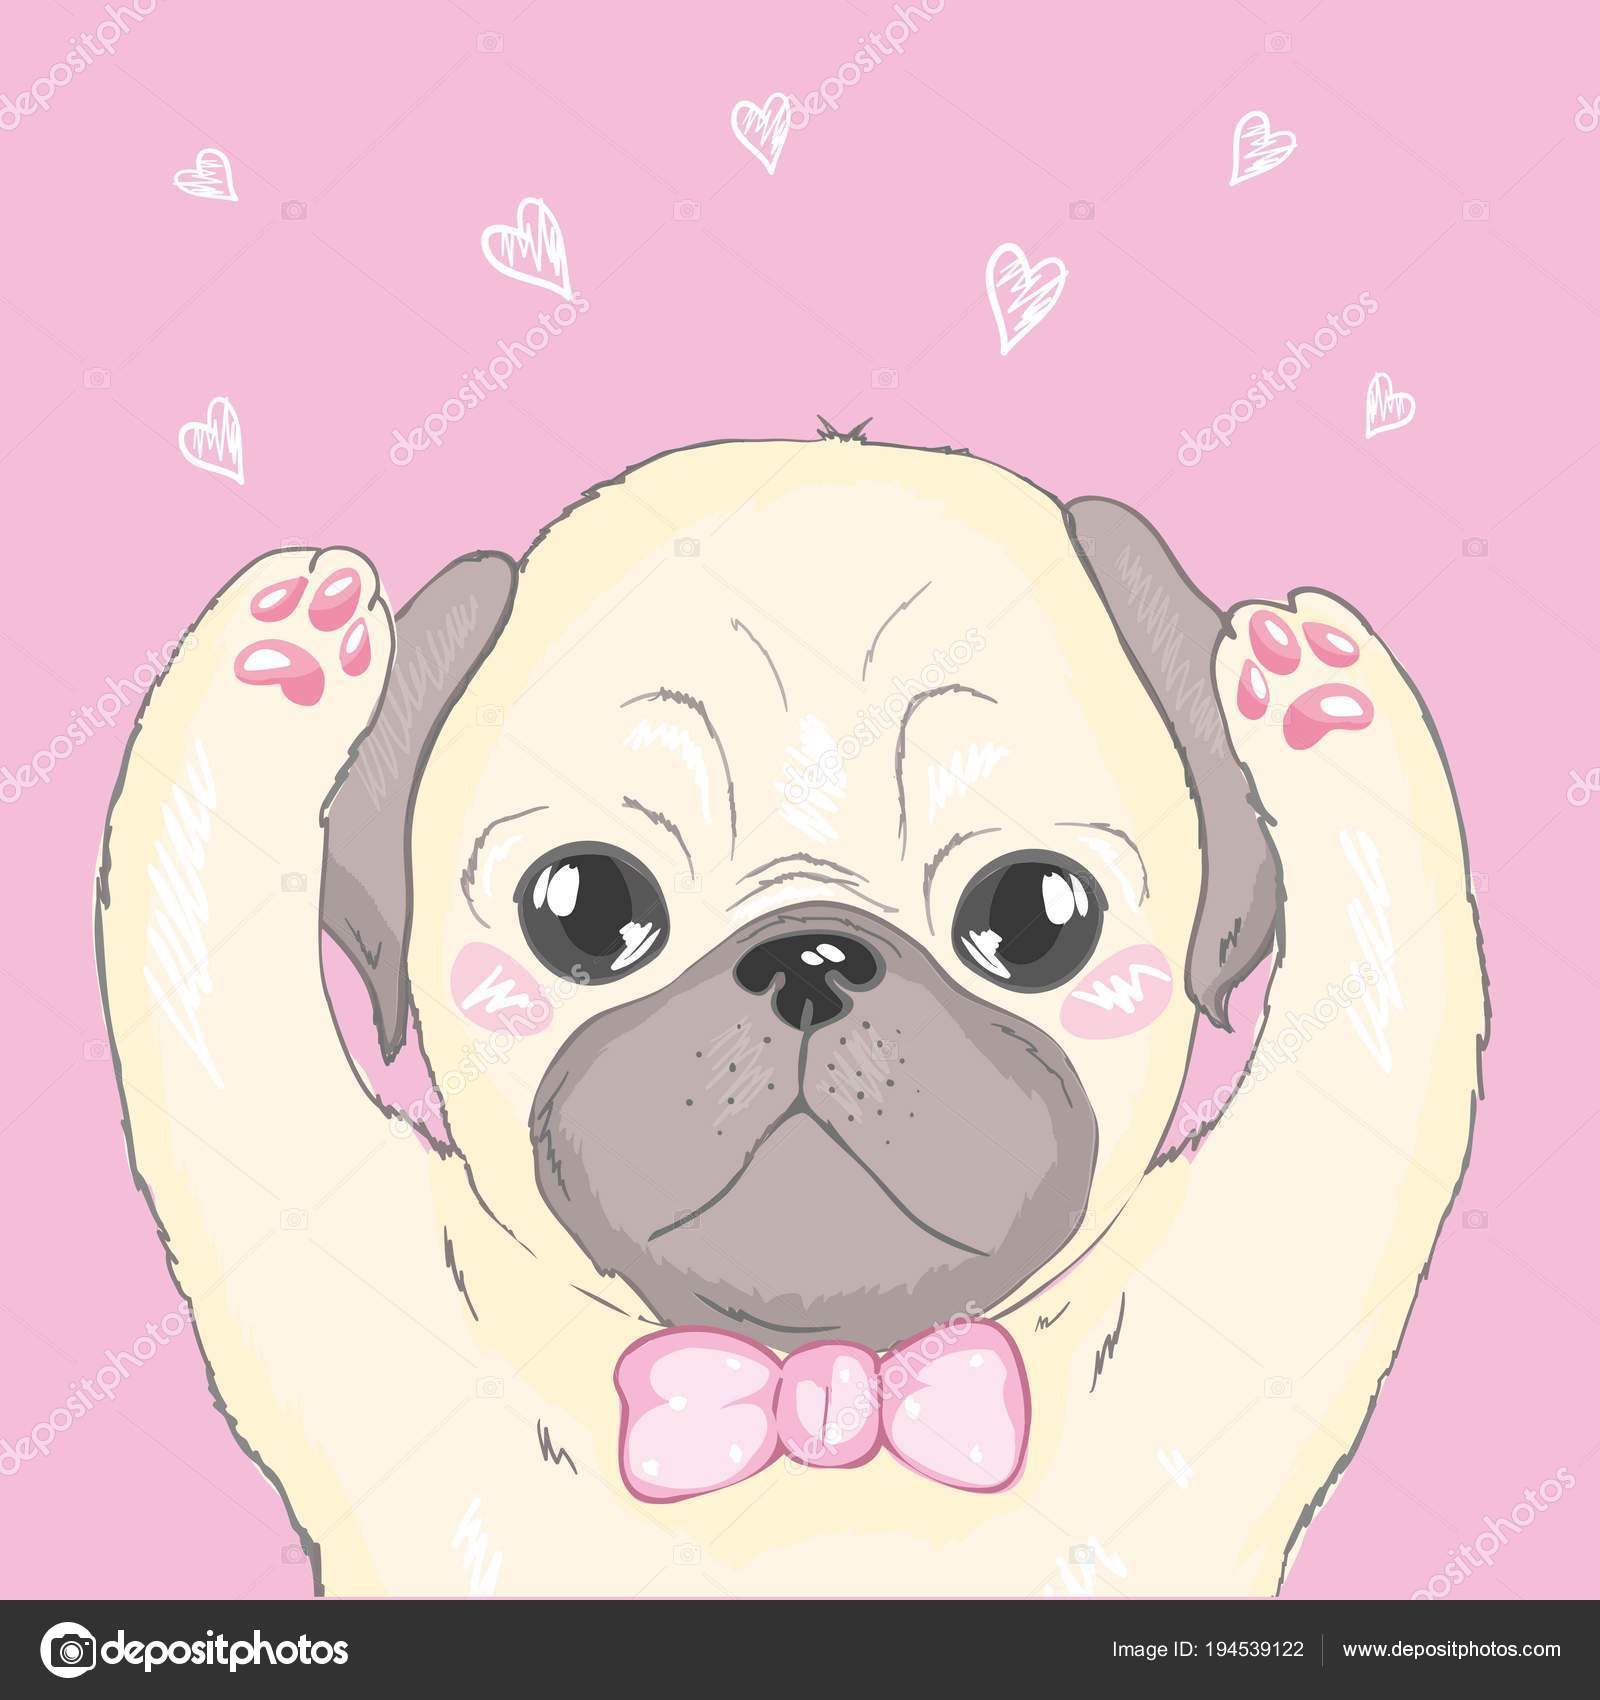 Cartoon Puppy Wallpaper Vector Seamless Pattern With Cute Cartoon Dog Puppies Can Be Used As A Background Wallpaper Fabric And For Other Design French Bulldog Pattern Stock Vector C 89534886399 Mail Ru 194539122